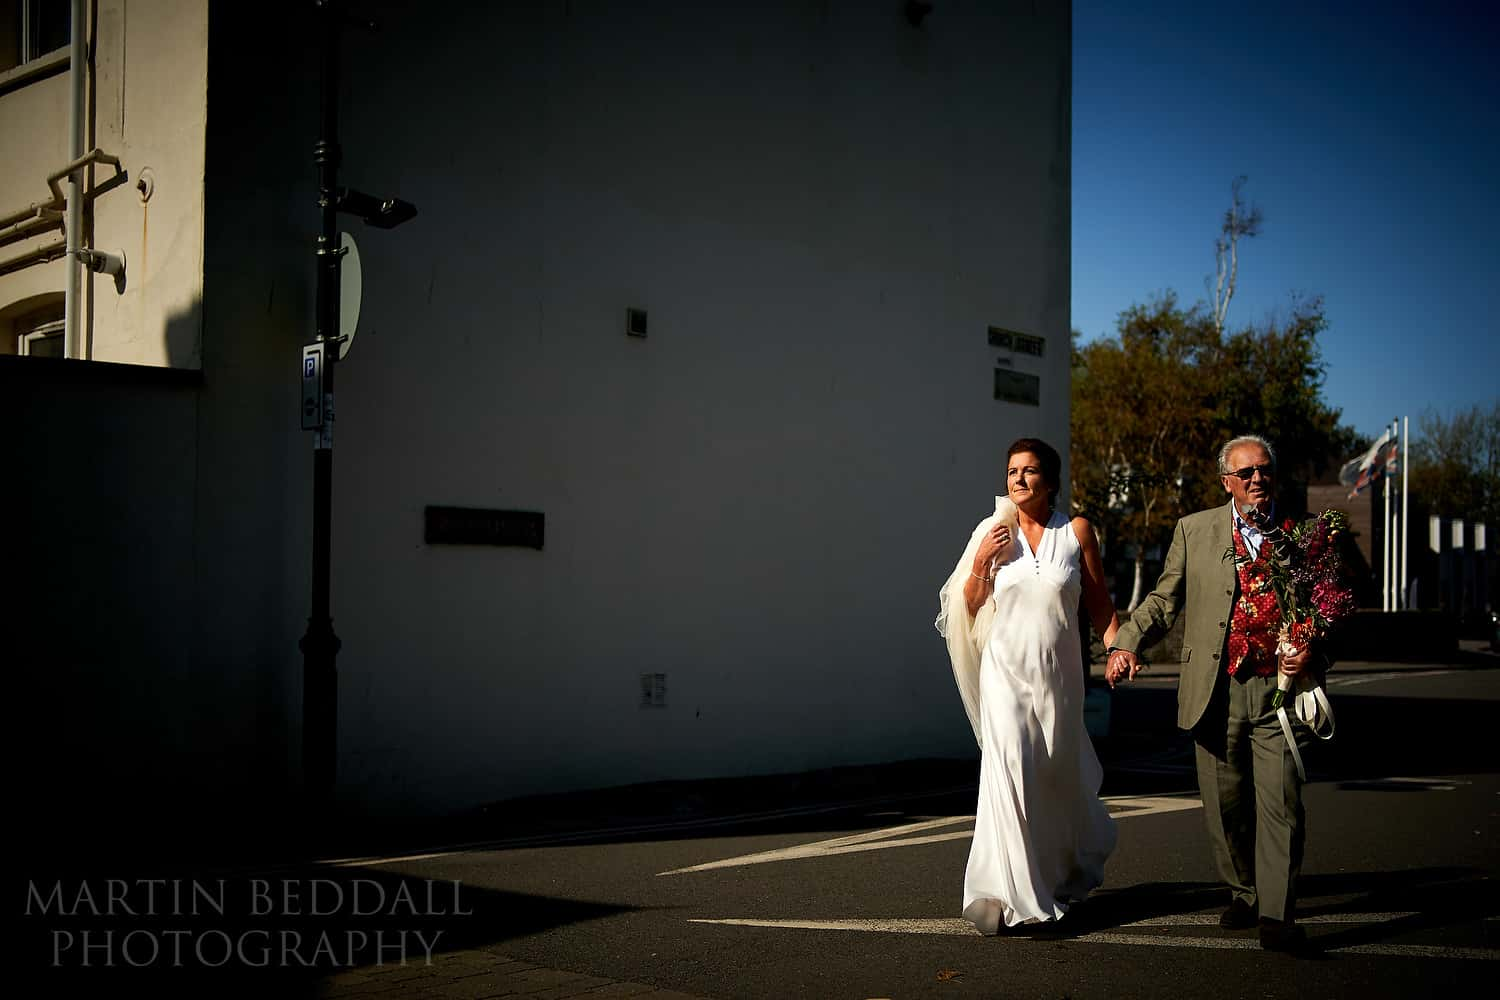 Bride walking to the church with the Sony 35mm F1.8 lens